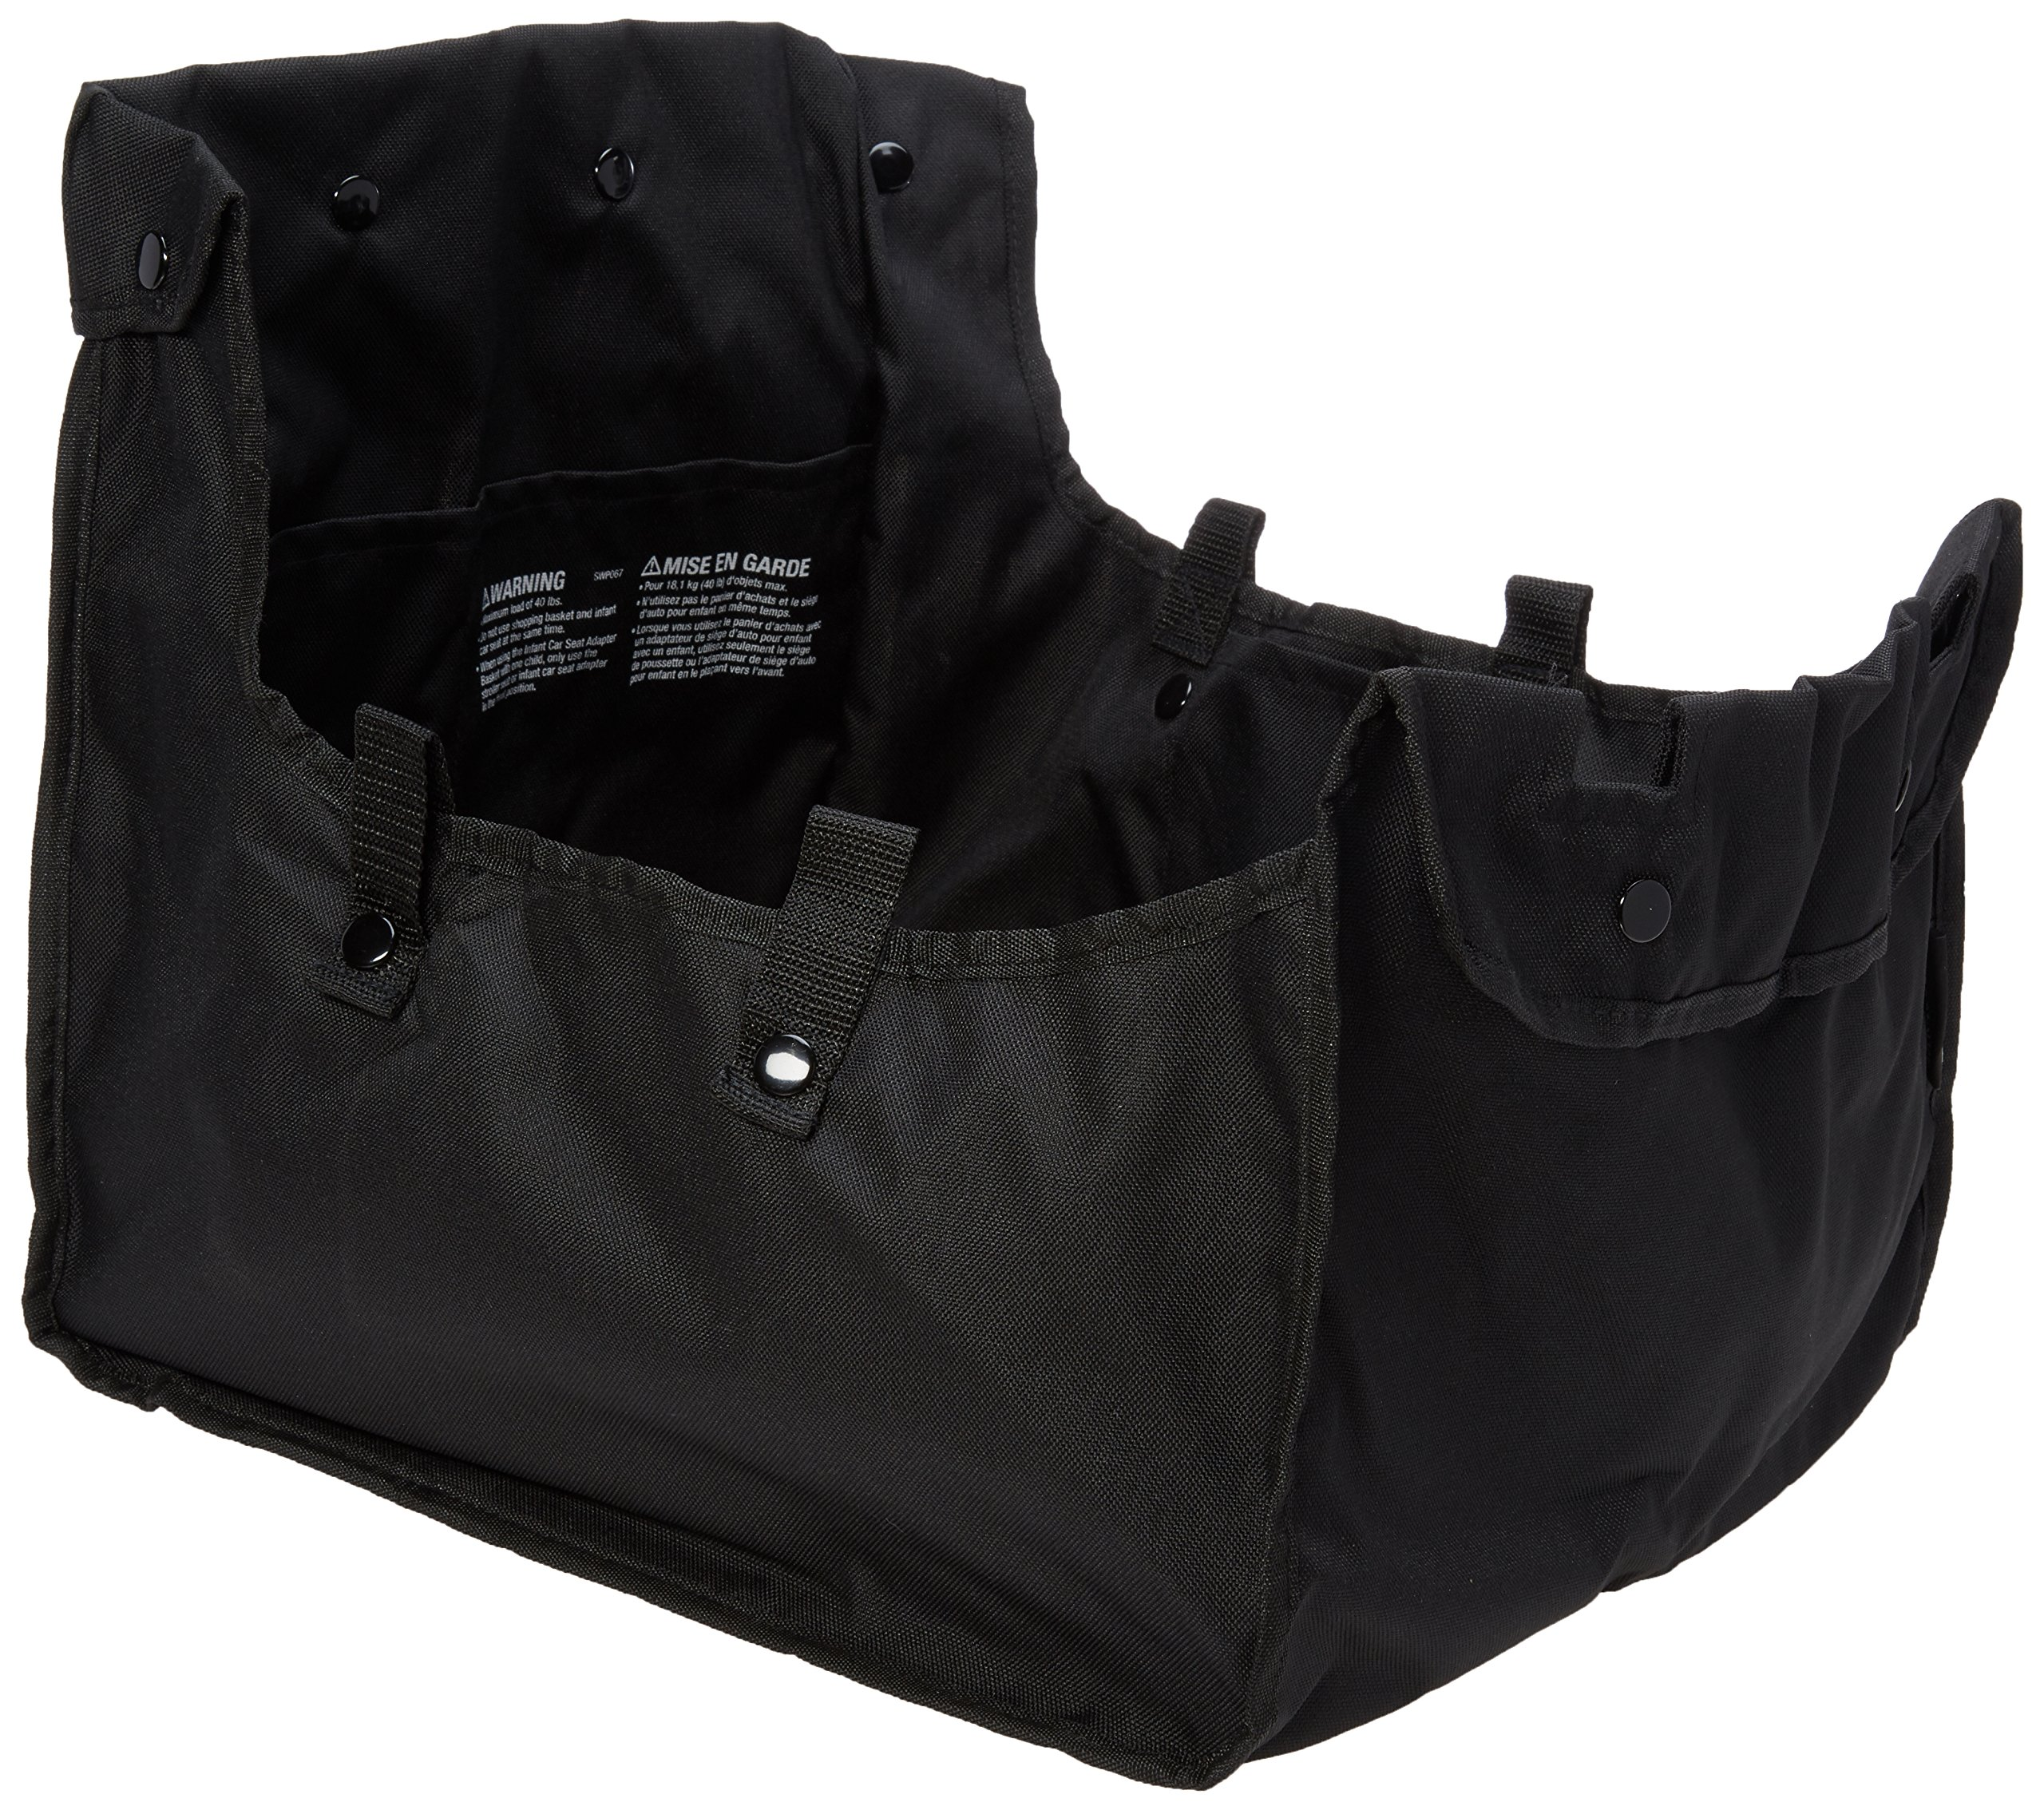 Contours Stroller Shopping Basket Accessory for Contours Strollers (Adapter Sold Separately) by Contours